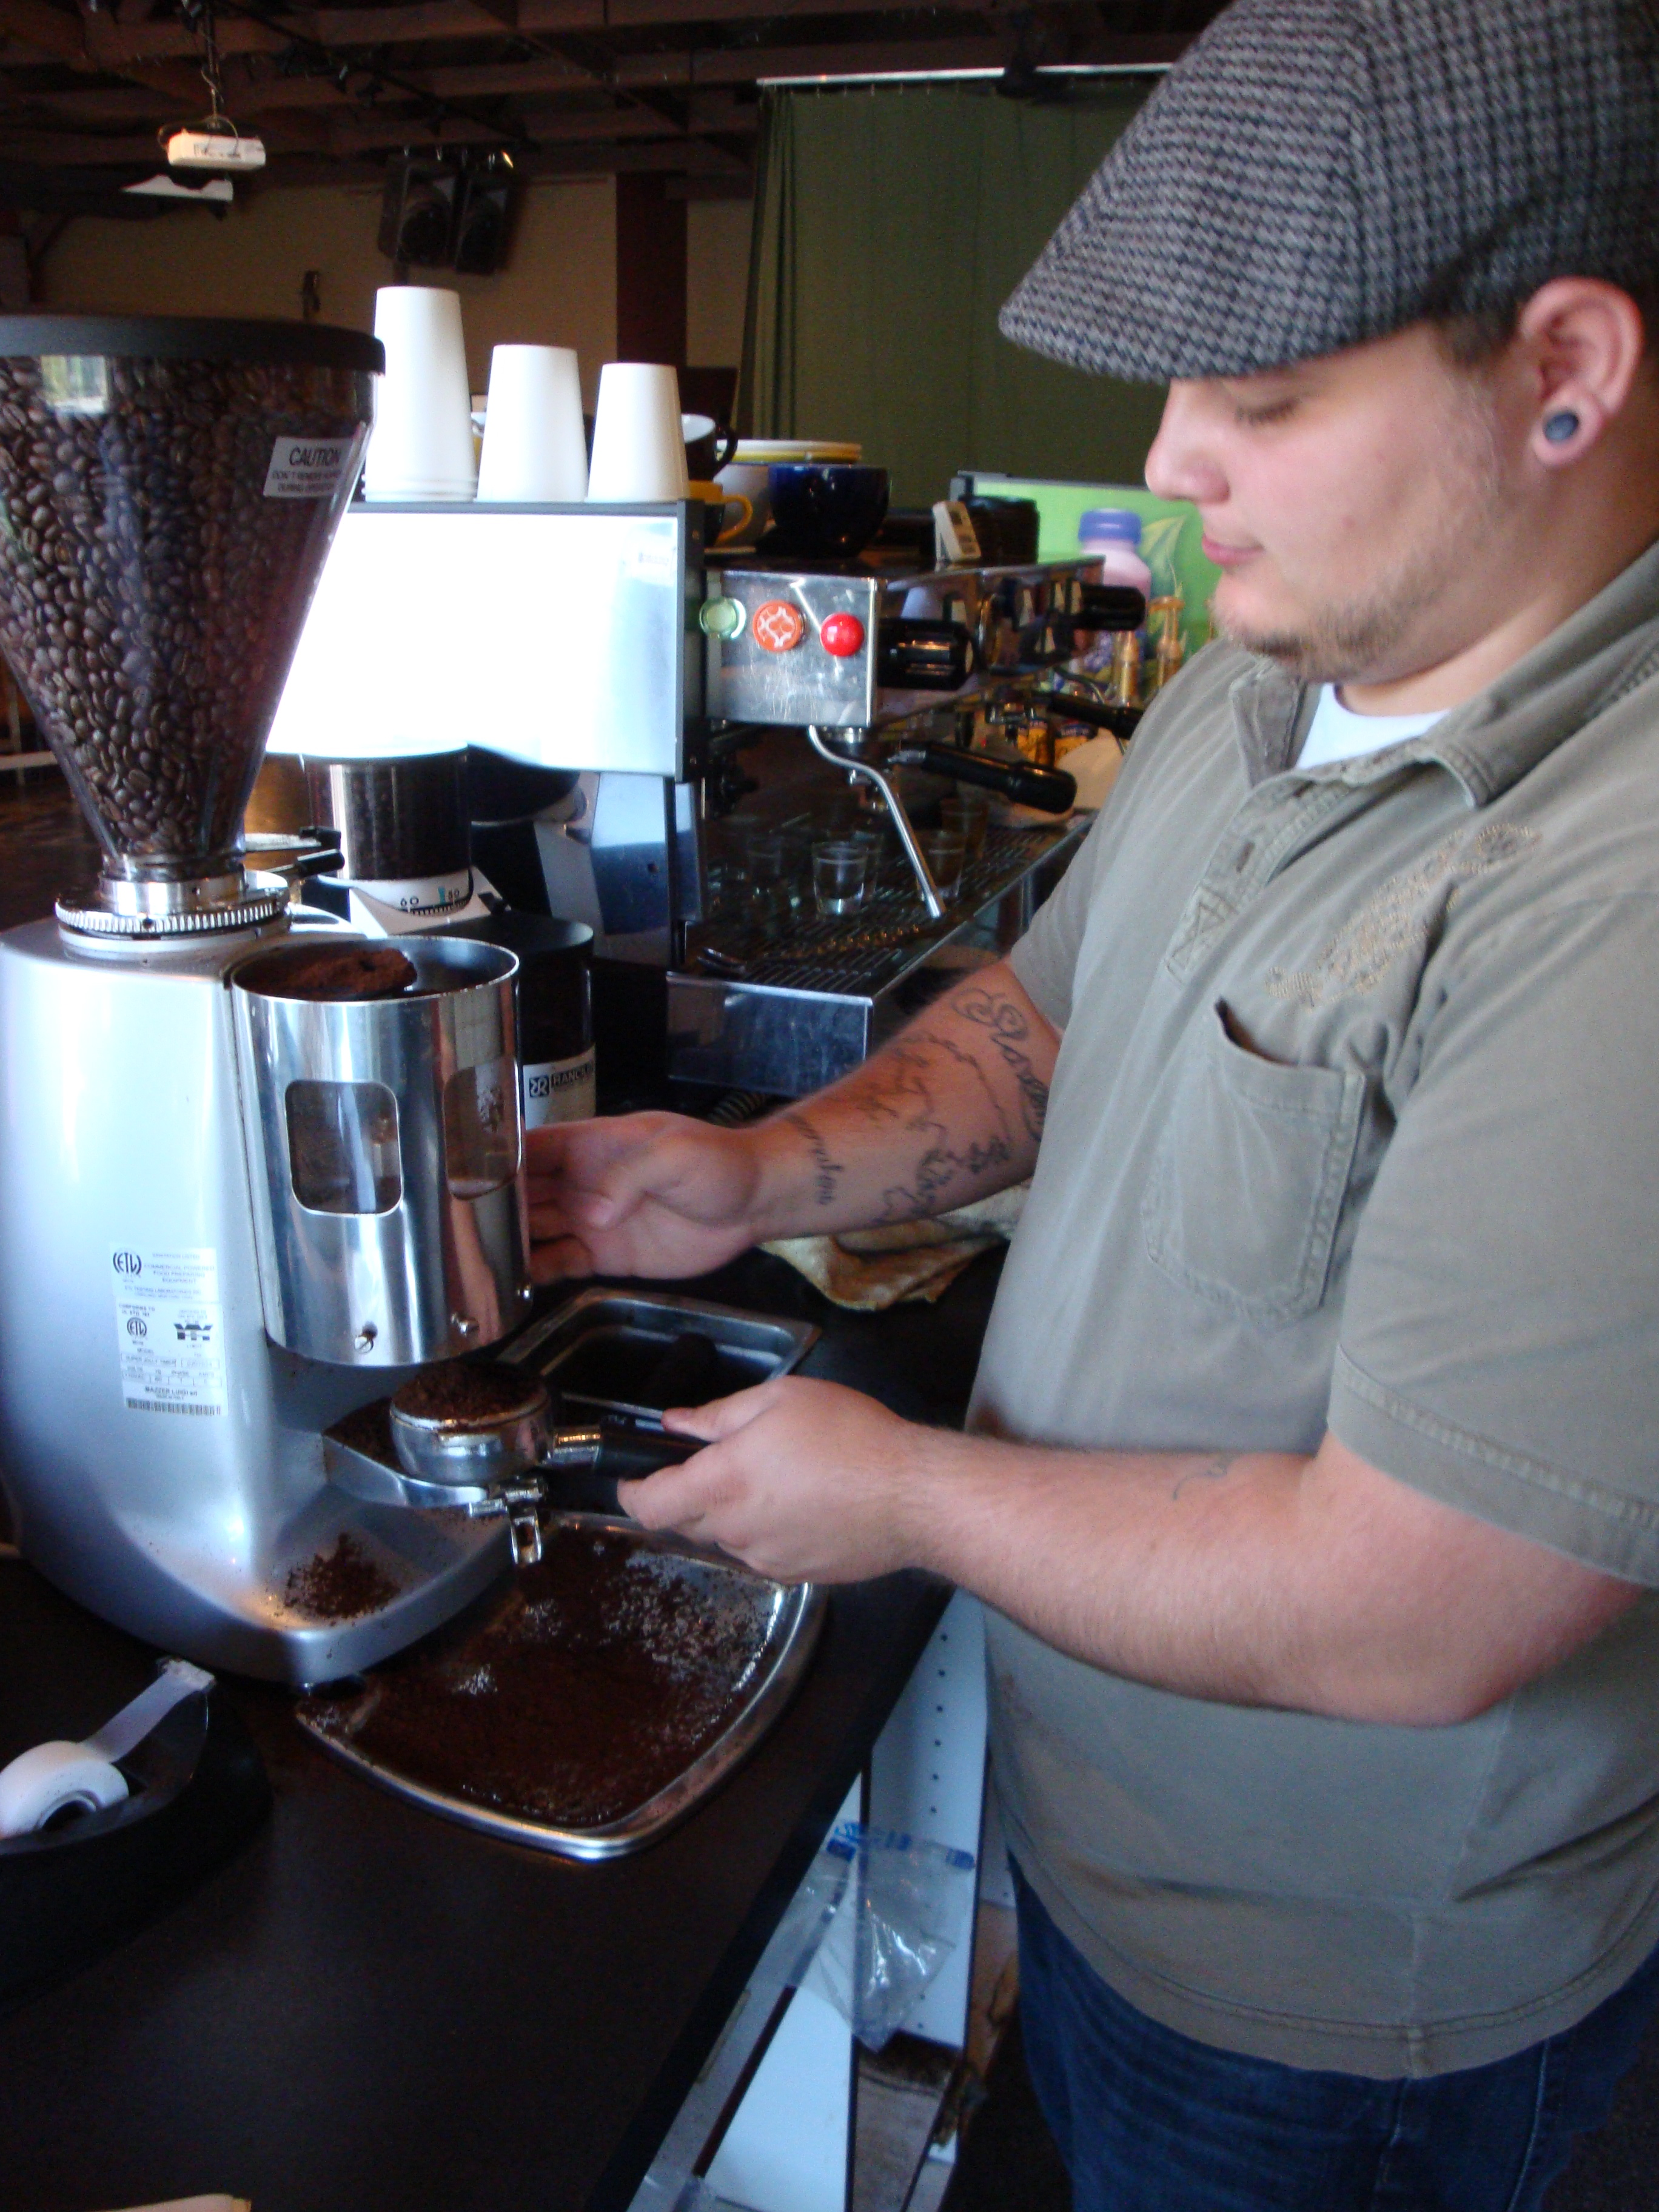 Getting the grounds from the Mazzer